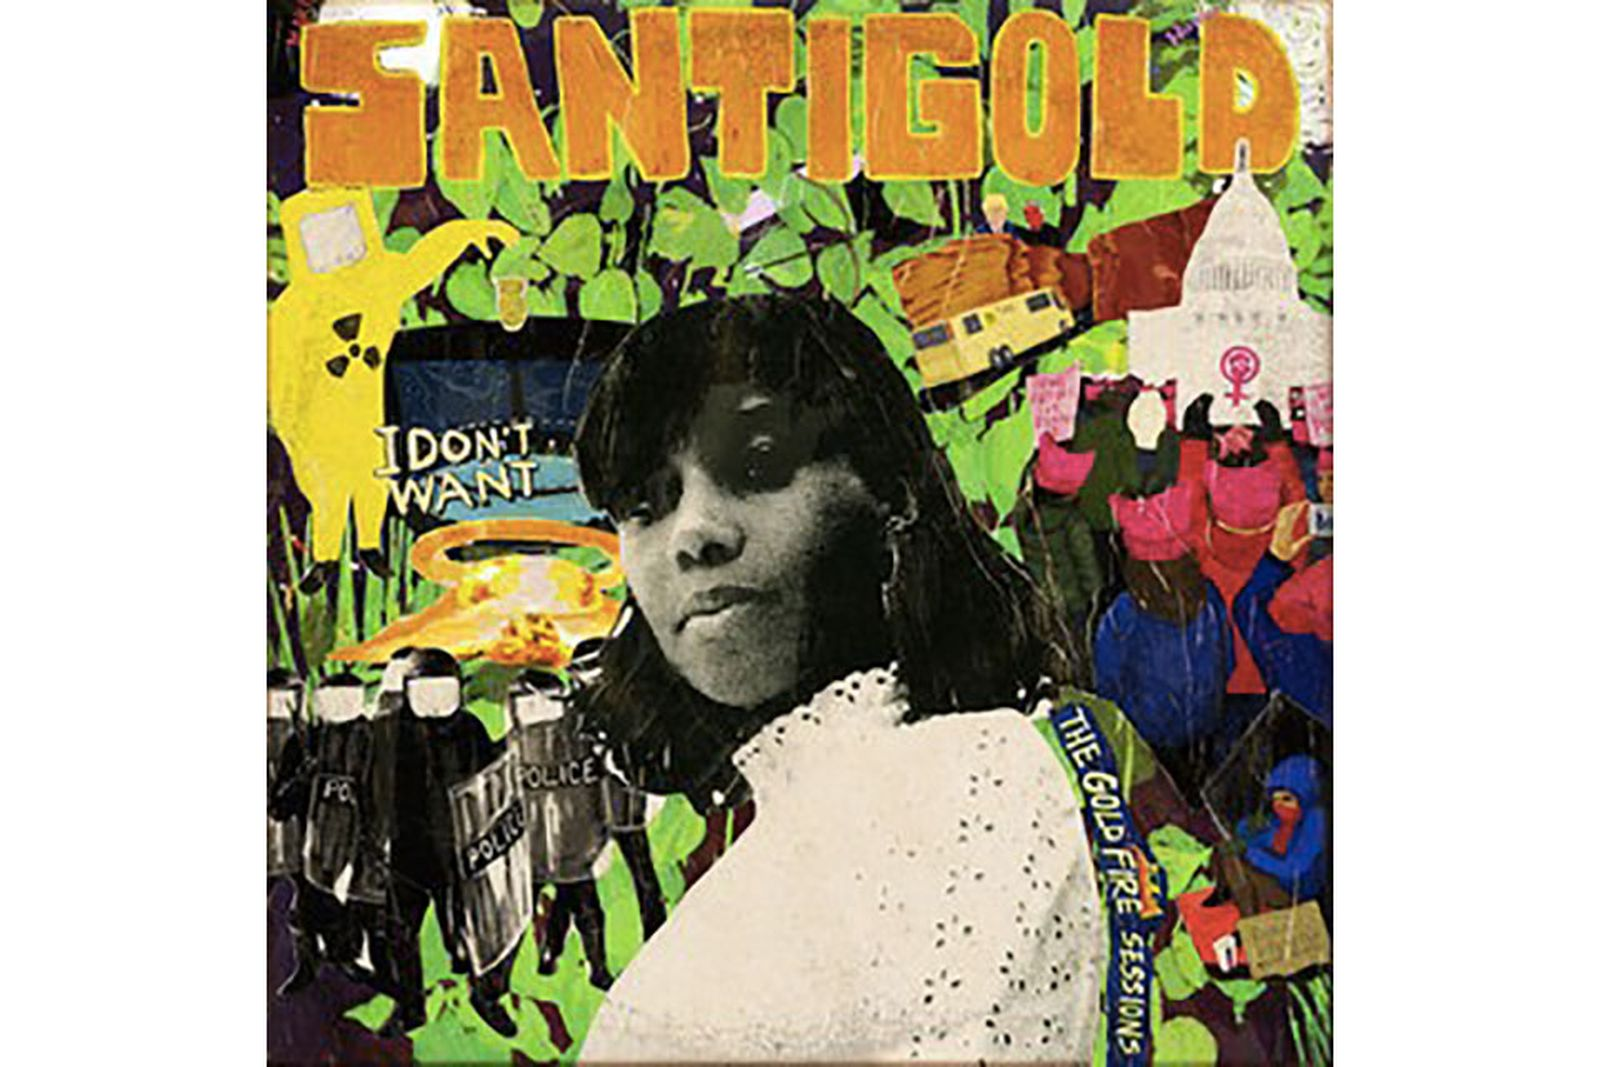 santigold i dont want review i don't want: the goldfire sessions